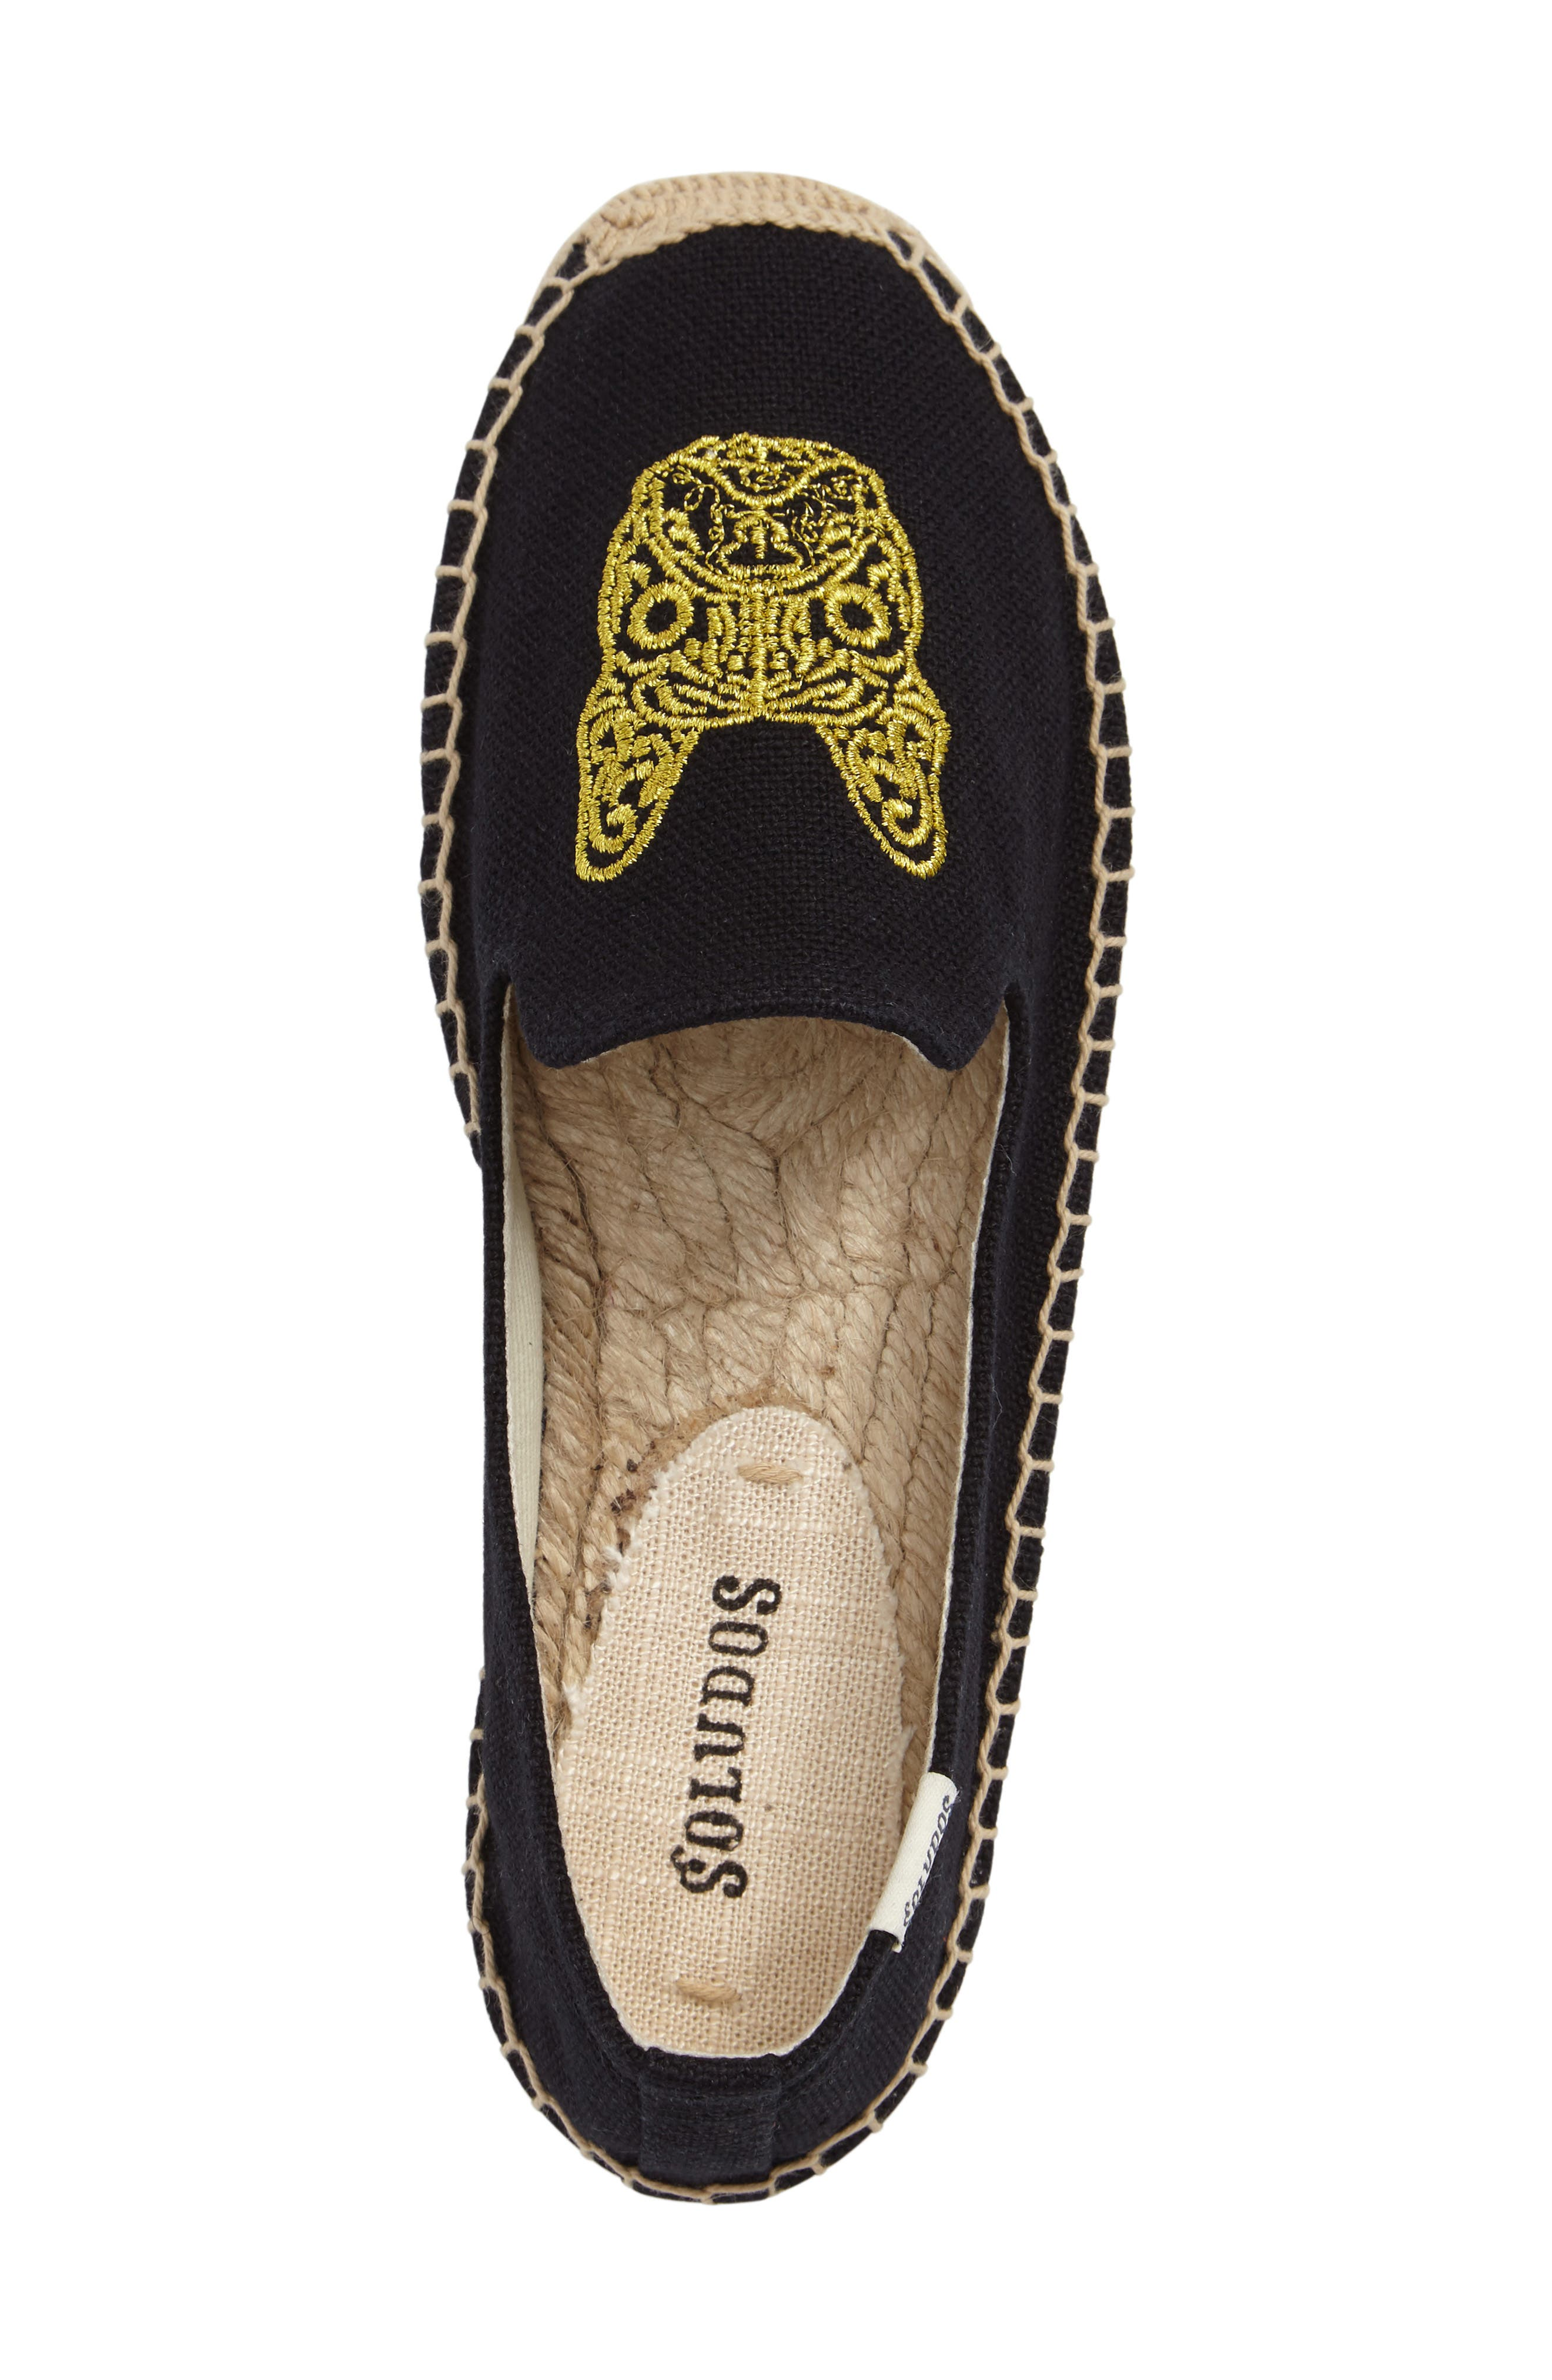 Frenchie Espadrille Loafer,                             Alternate thumbnail 3, color,                             006